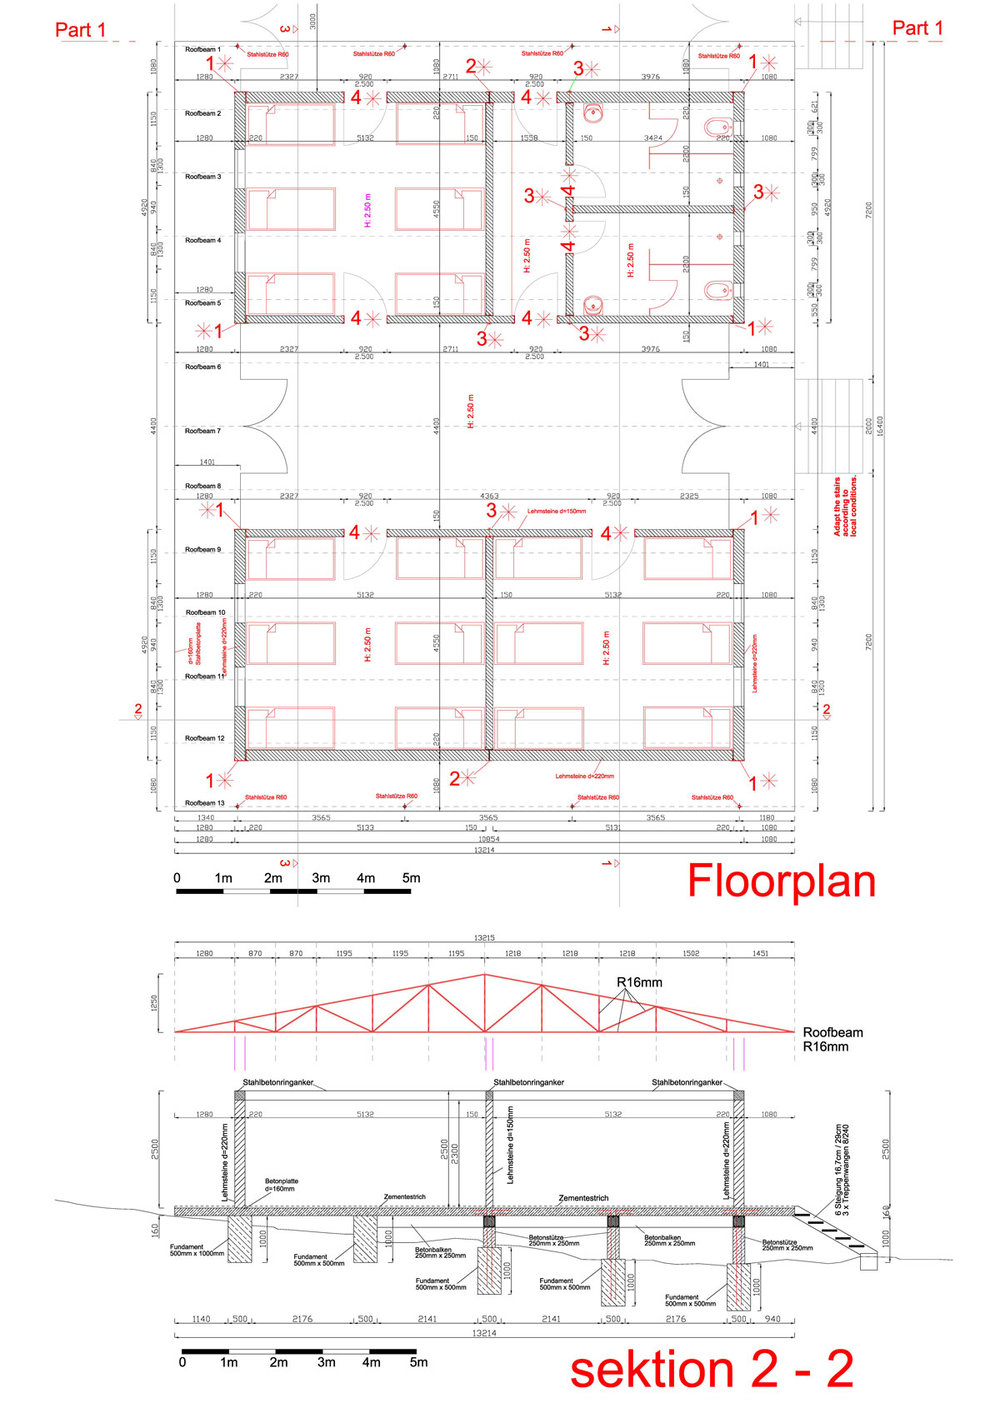 004-ADDIS-AFU-Floorplan-web.jpg